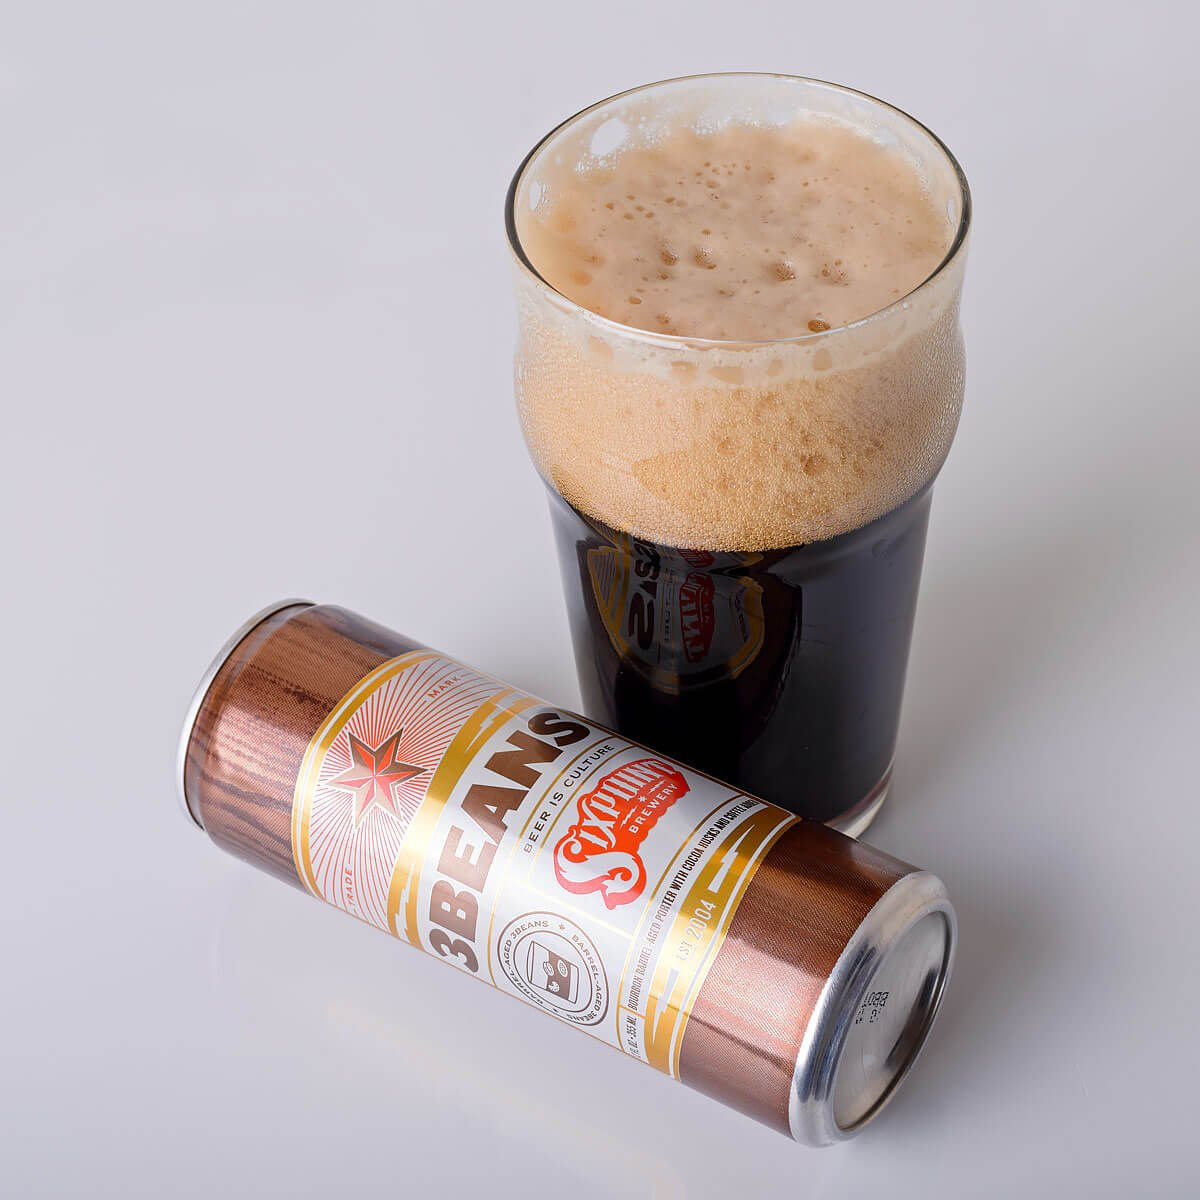 3Beans, a Baltic Porter by Sixpoint Brewery